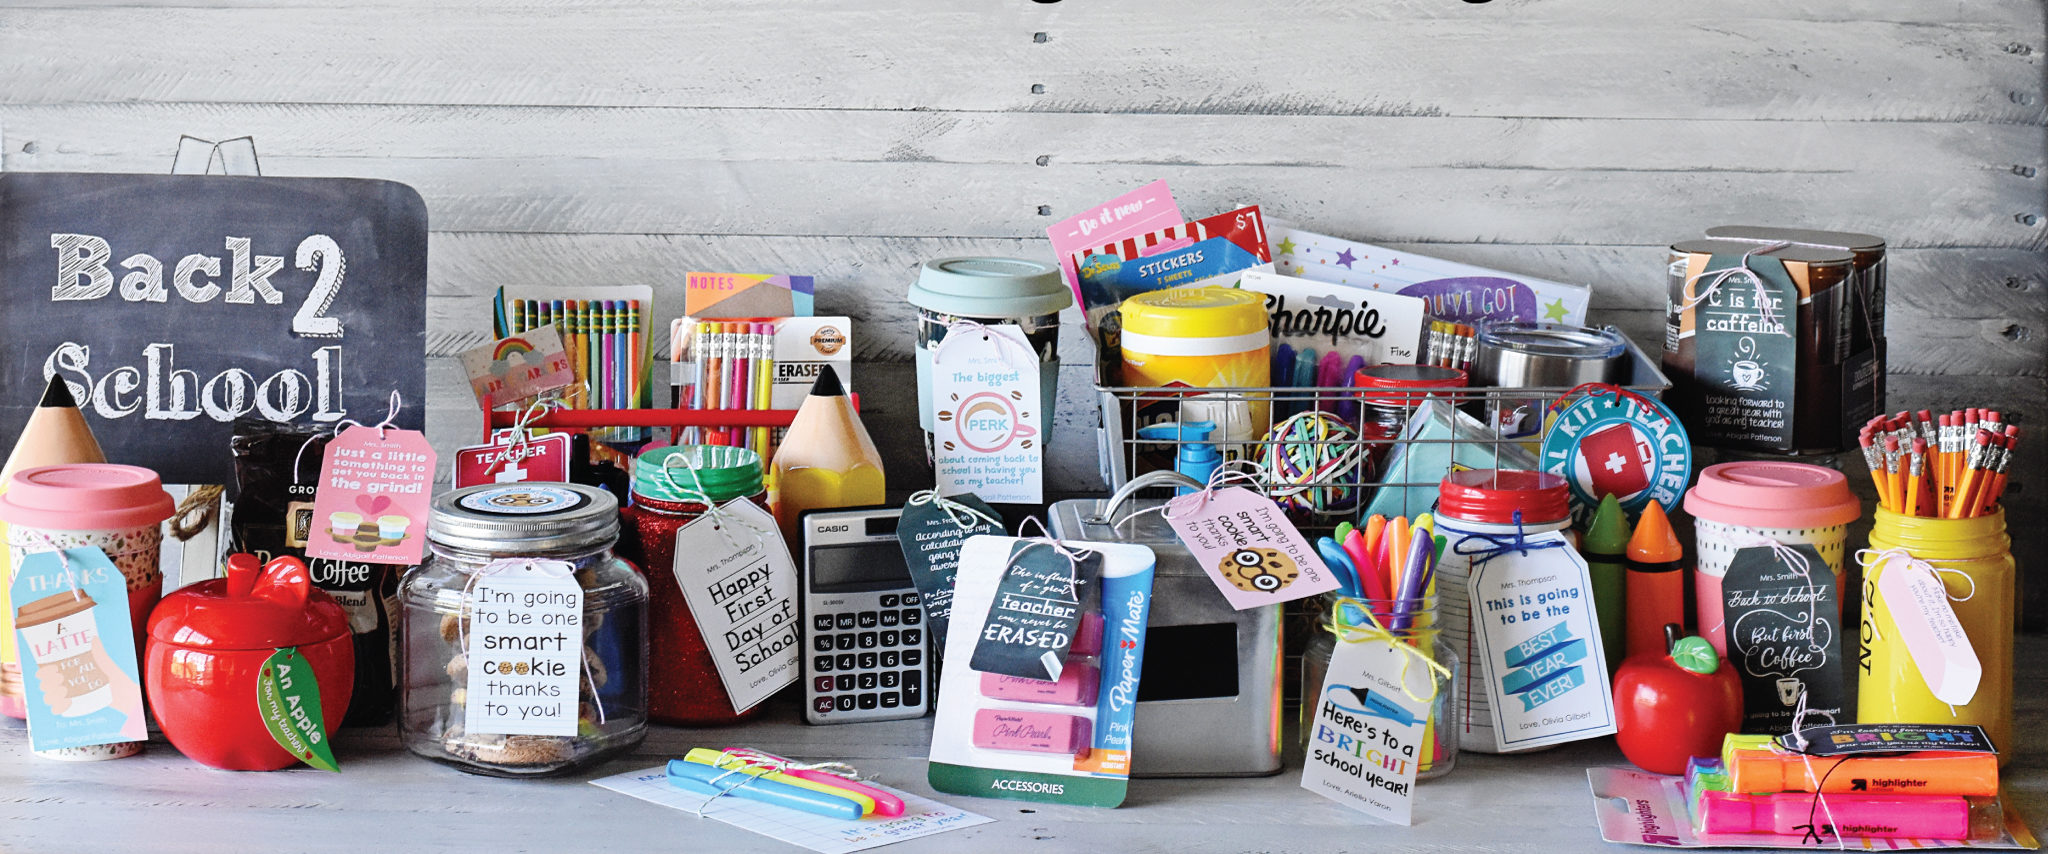 Back to School Teacher Gift Ideas!